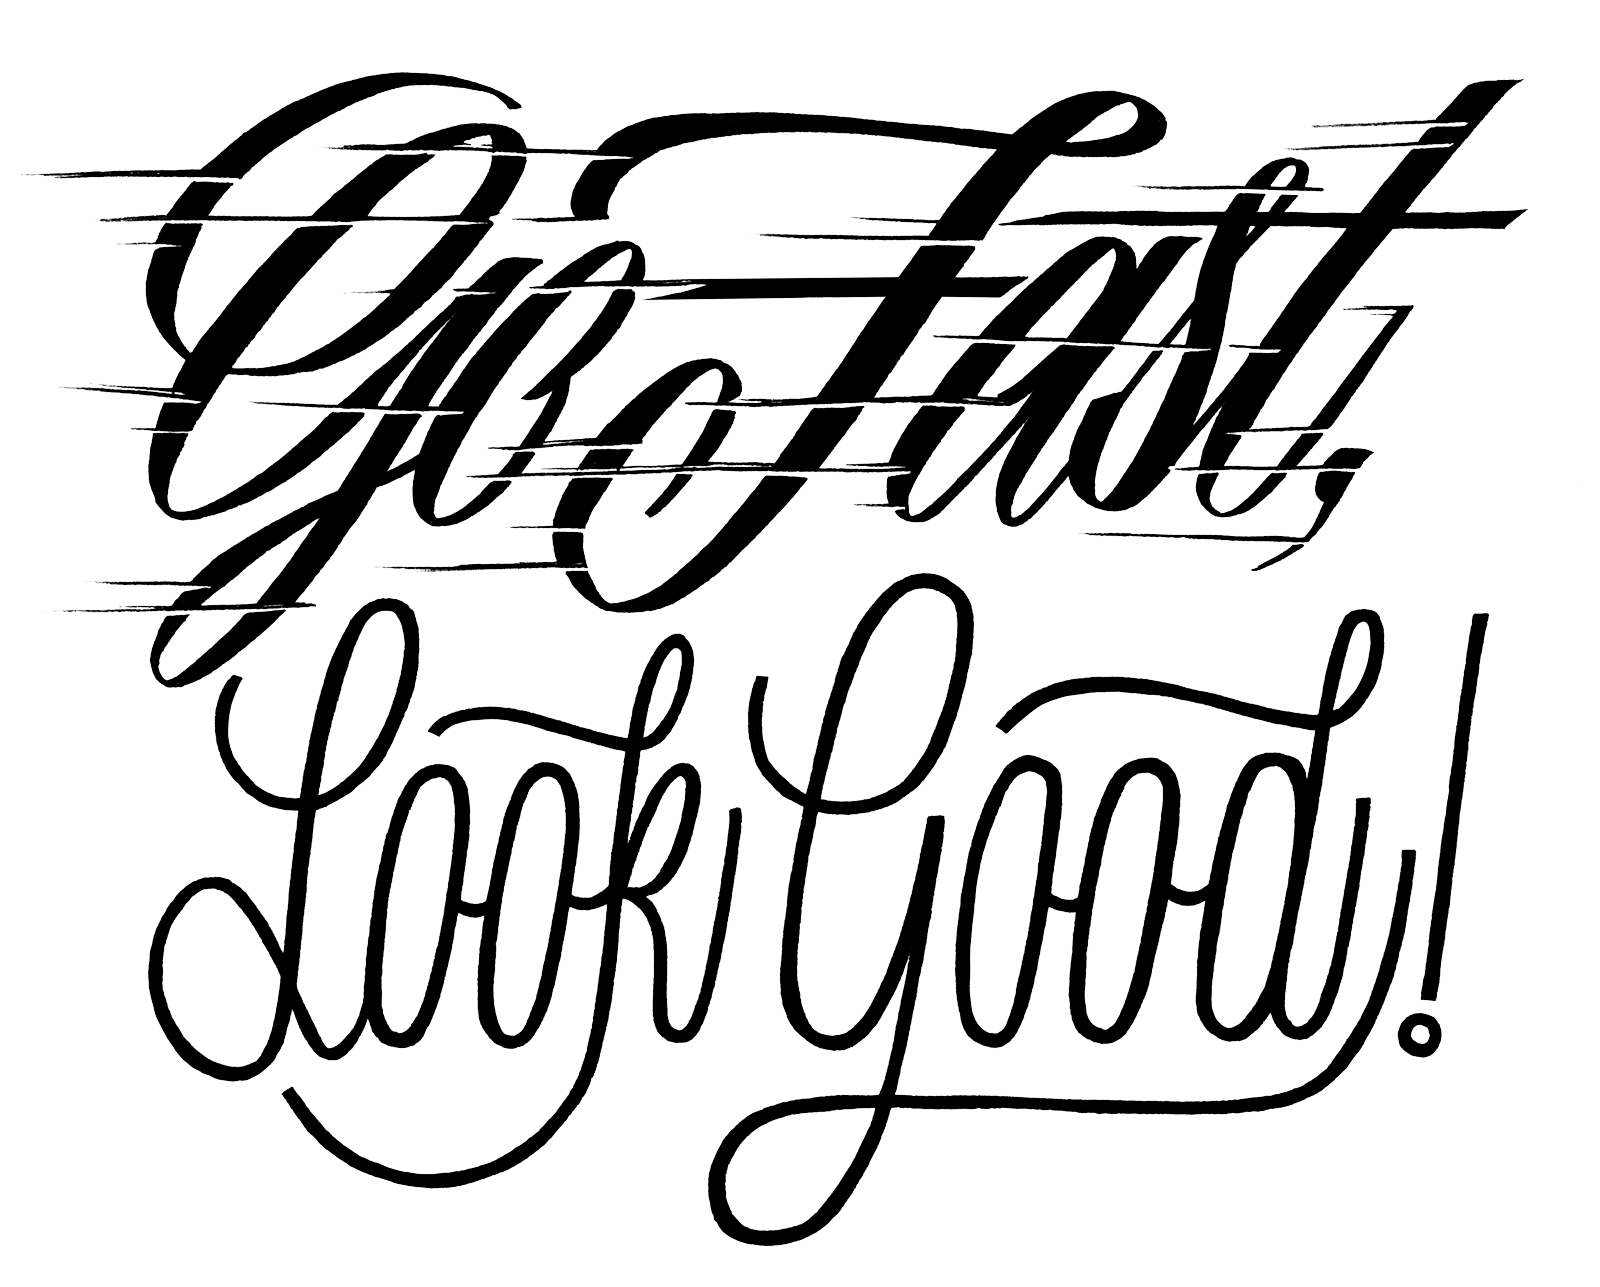 Typographic drawing art. Fast n loud typography